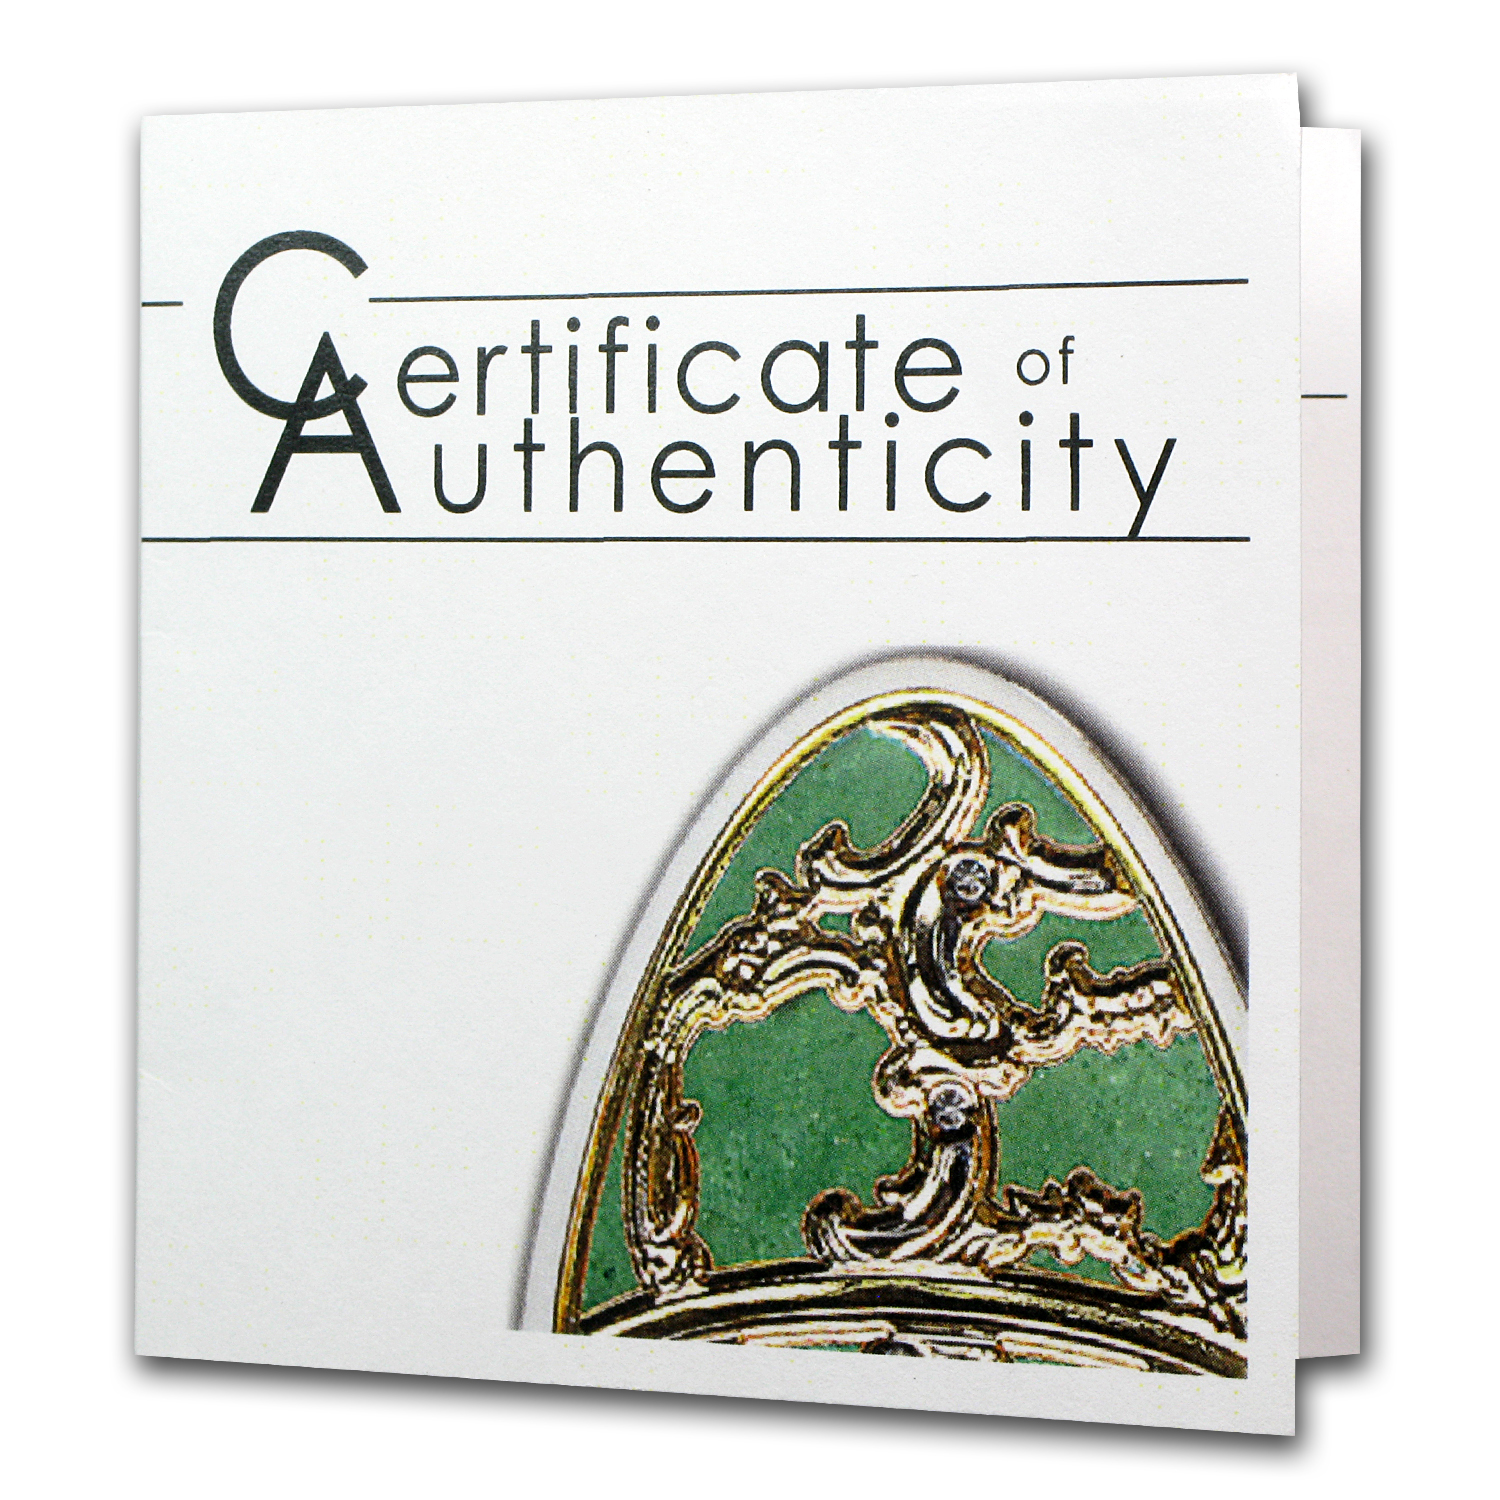 2013 Cook Islands Silver Proof Imperial Egg in Cloisonné Olive